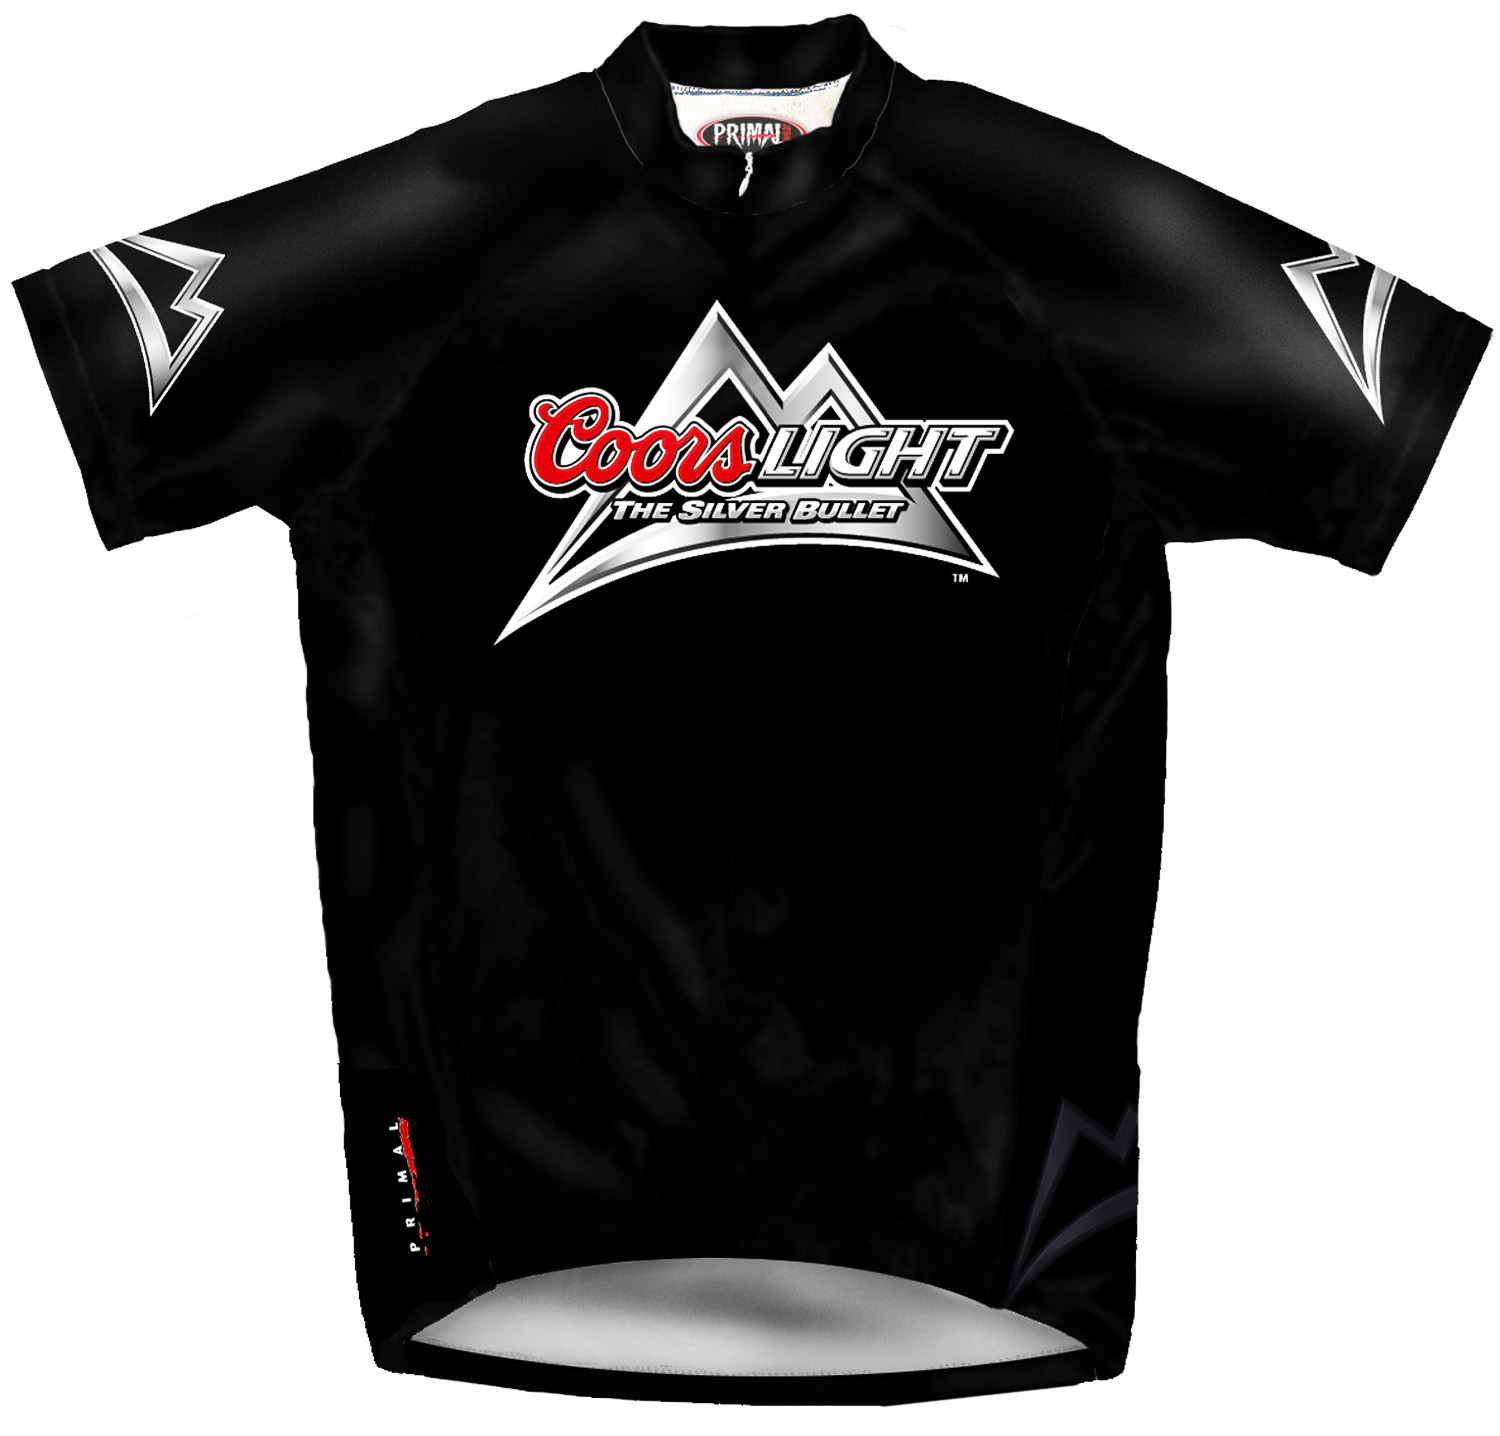 2423de16e Primal Wear Coors Light Beer Cycling Jersey Men s Short Sleeve bicycle bike  +sox